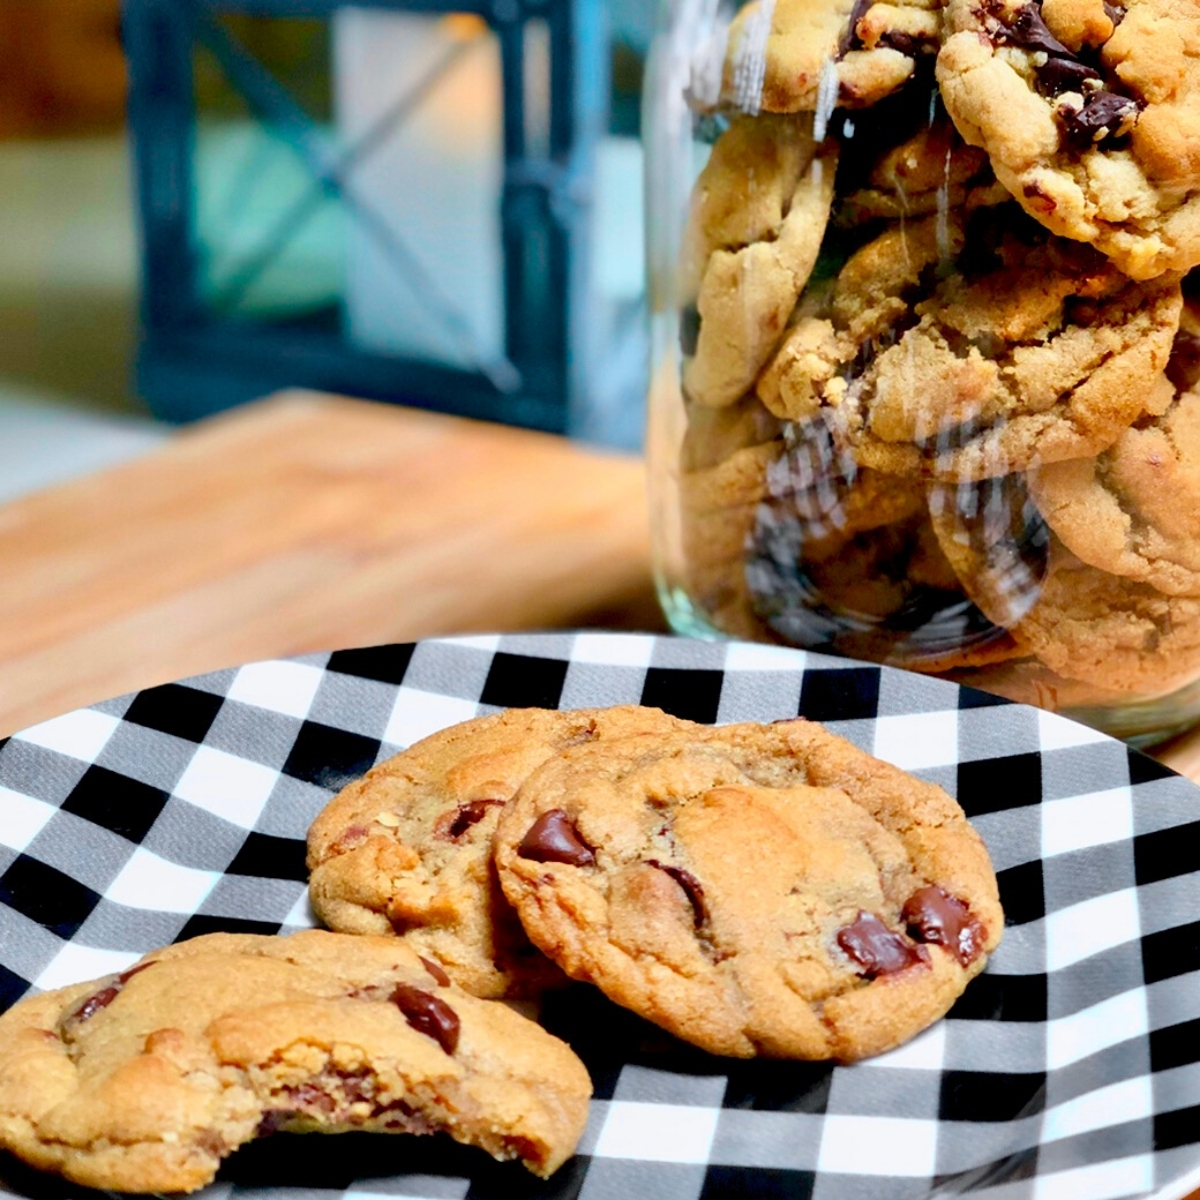 A checkered plate with vegan chocolate chip cookies next to a glass jar filled with cookies.